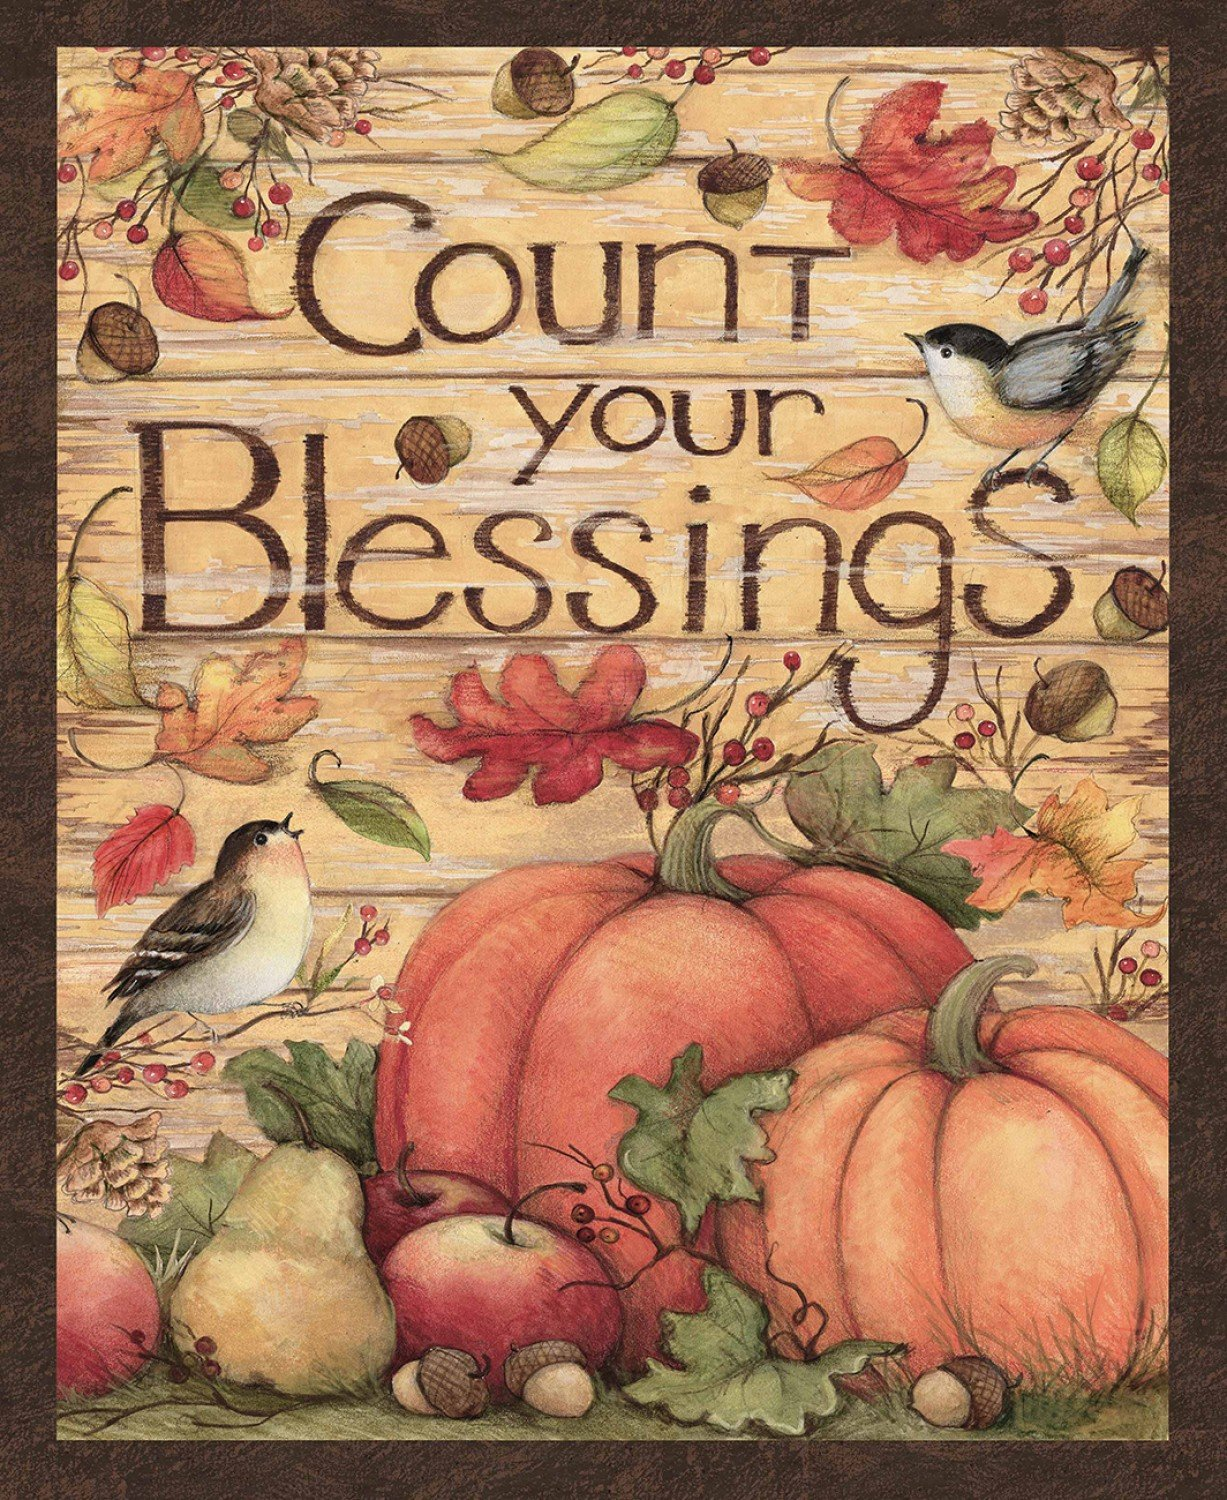 Harvest Count Your Blessings Panel by Susan Wingett for Springs Creative 64482-A620715